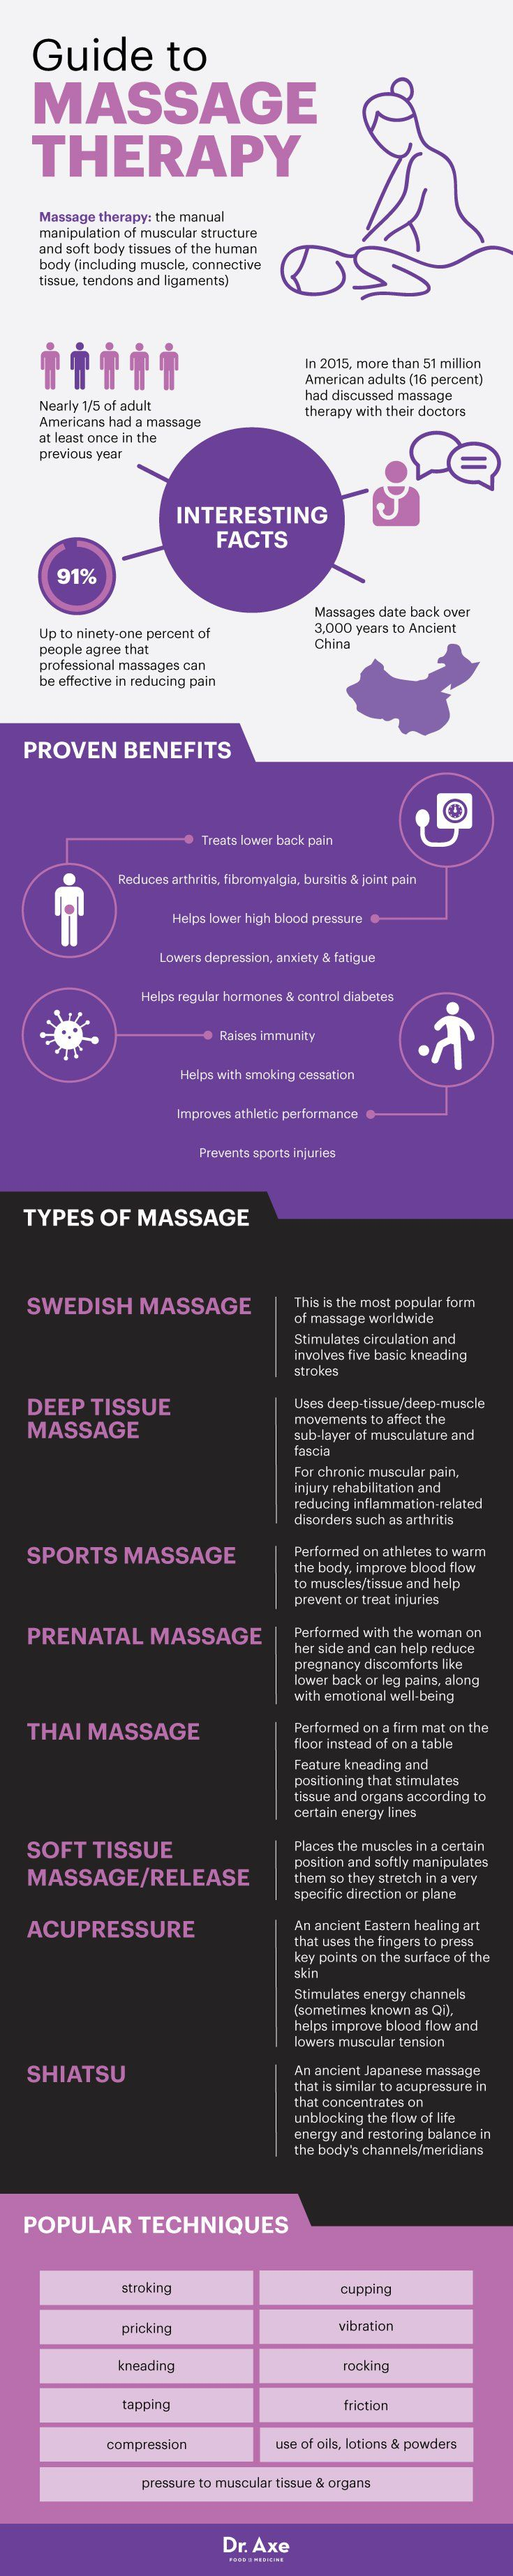 Guide to massage therapy Dr Axe